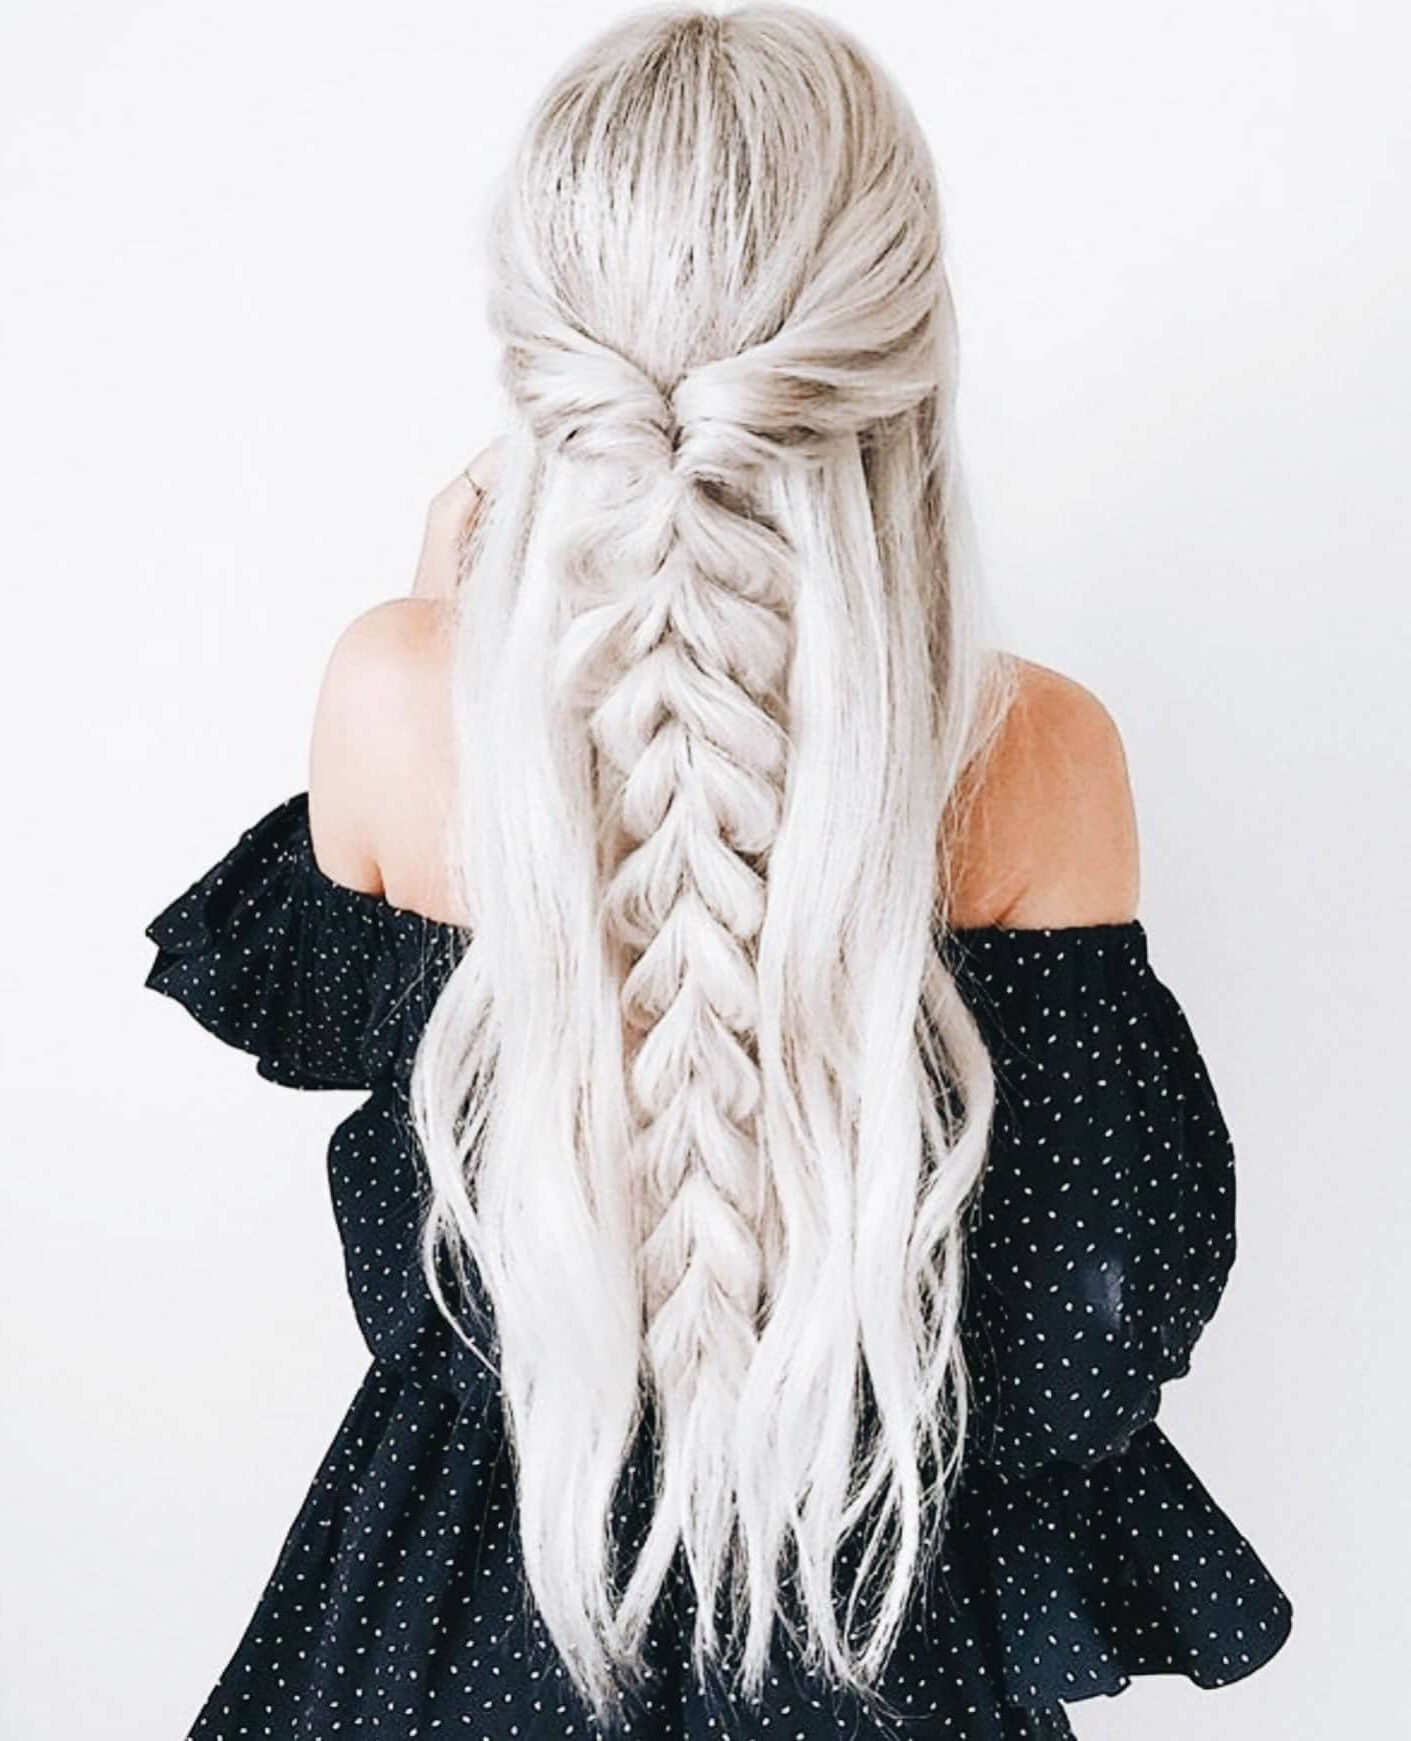 50 Unforgettable Ash Blonde Hairstyles To Inspire You With Regard To Famous Blonde Asymmetrical Pigtails Braid Hairstyles (Gallery 16 of 20)